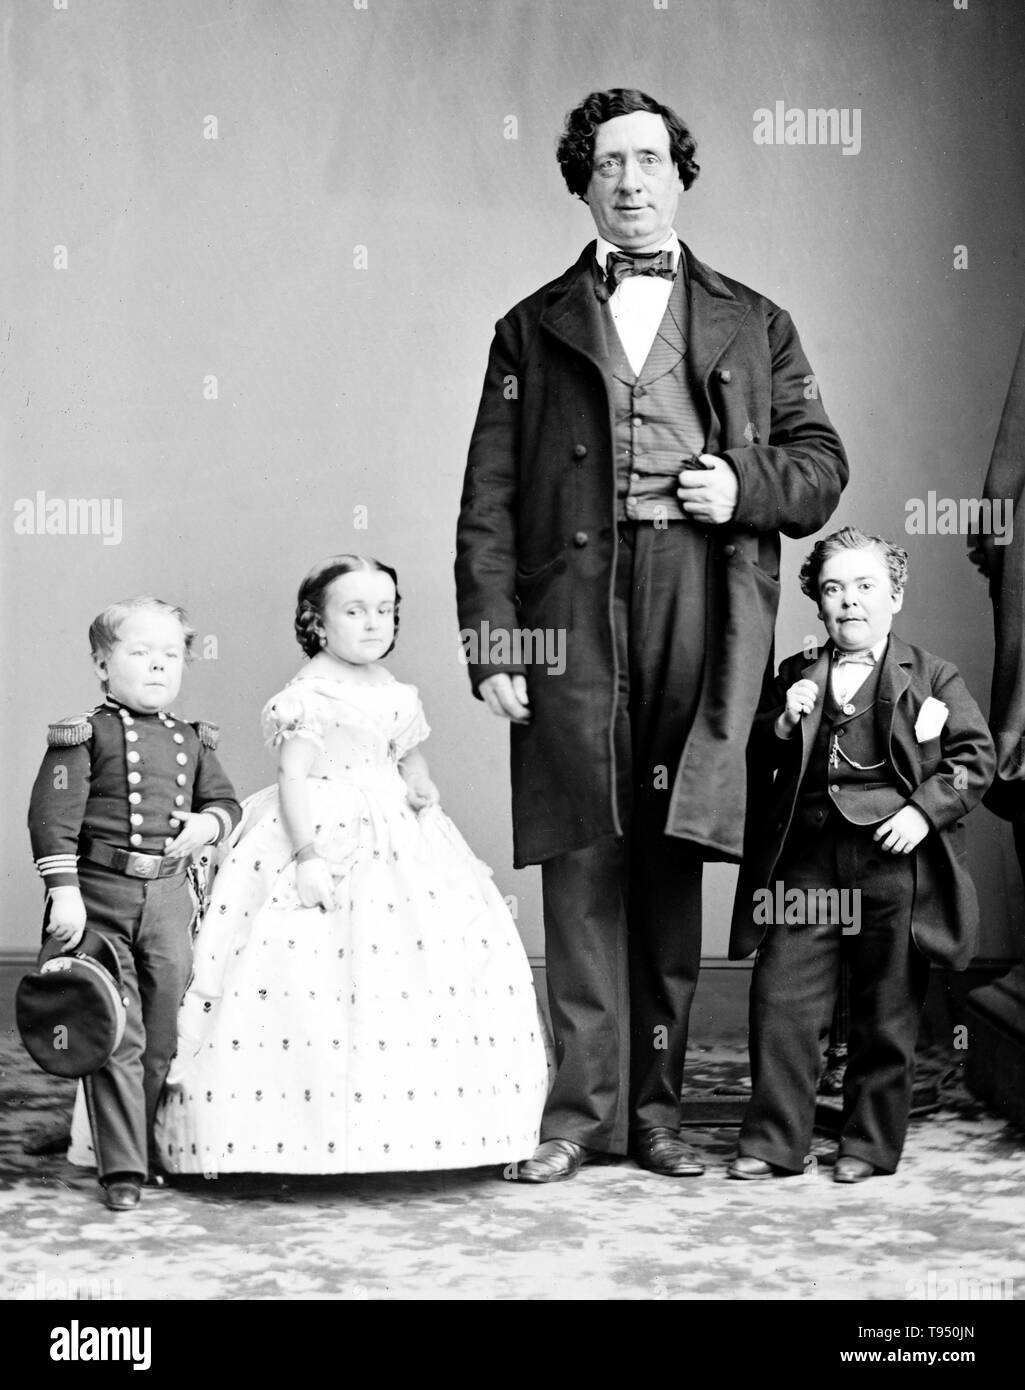 Entitled: 'Gen. Tom Thumb, Miss Lavinia Warren, The Giant.' Charles Sherwood Stratton (January 4, 1838 - July 15, 1883), 'General Tom Thumb', was an American dwarf performer. P.T. Barnum, a distant relative (half fifth cousin, twice removed), heard about Stratton and after contacting his parents, taught the boy how to sing, dance, mime, and impersonate famous people. Barnum took young Stratton on a tour of Europe, making him an international celebrity. His marriage with a little person, Lavinia Warren, became front-page news. The wedding took place at Grace Episcopal Church and the wedding rec - Stock Image